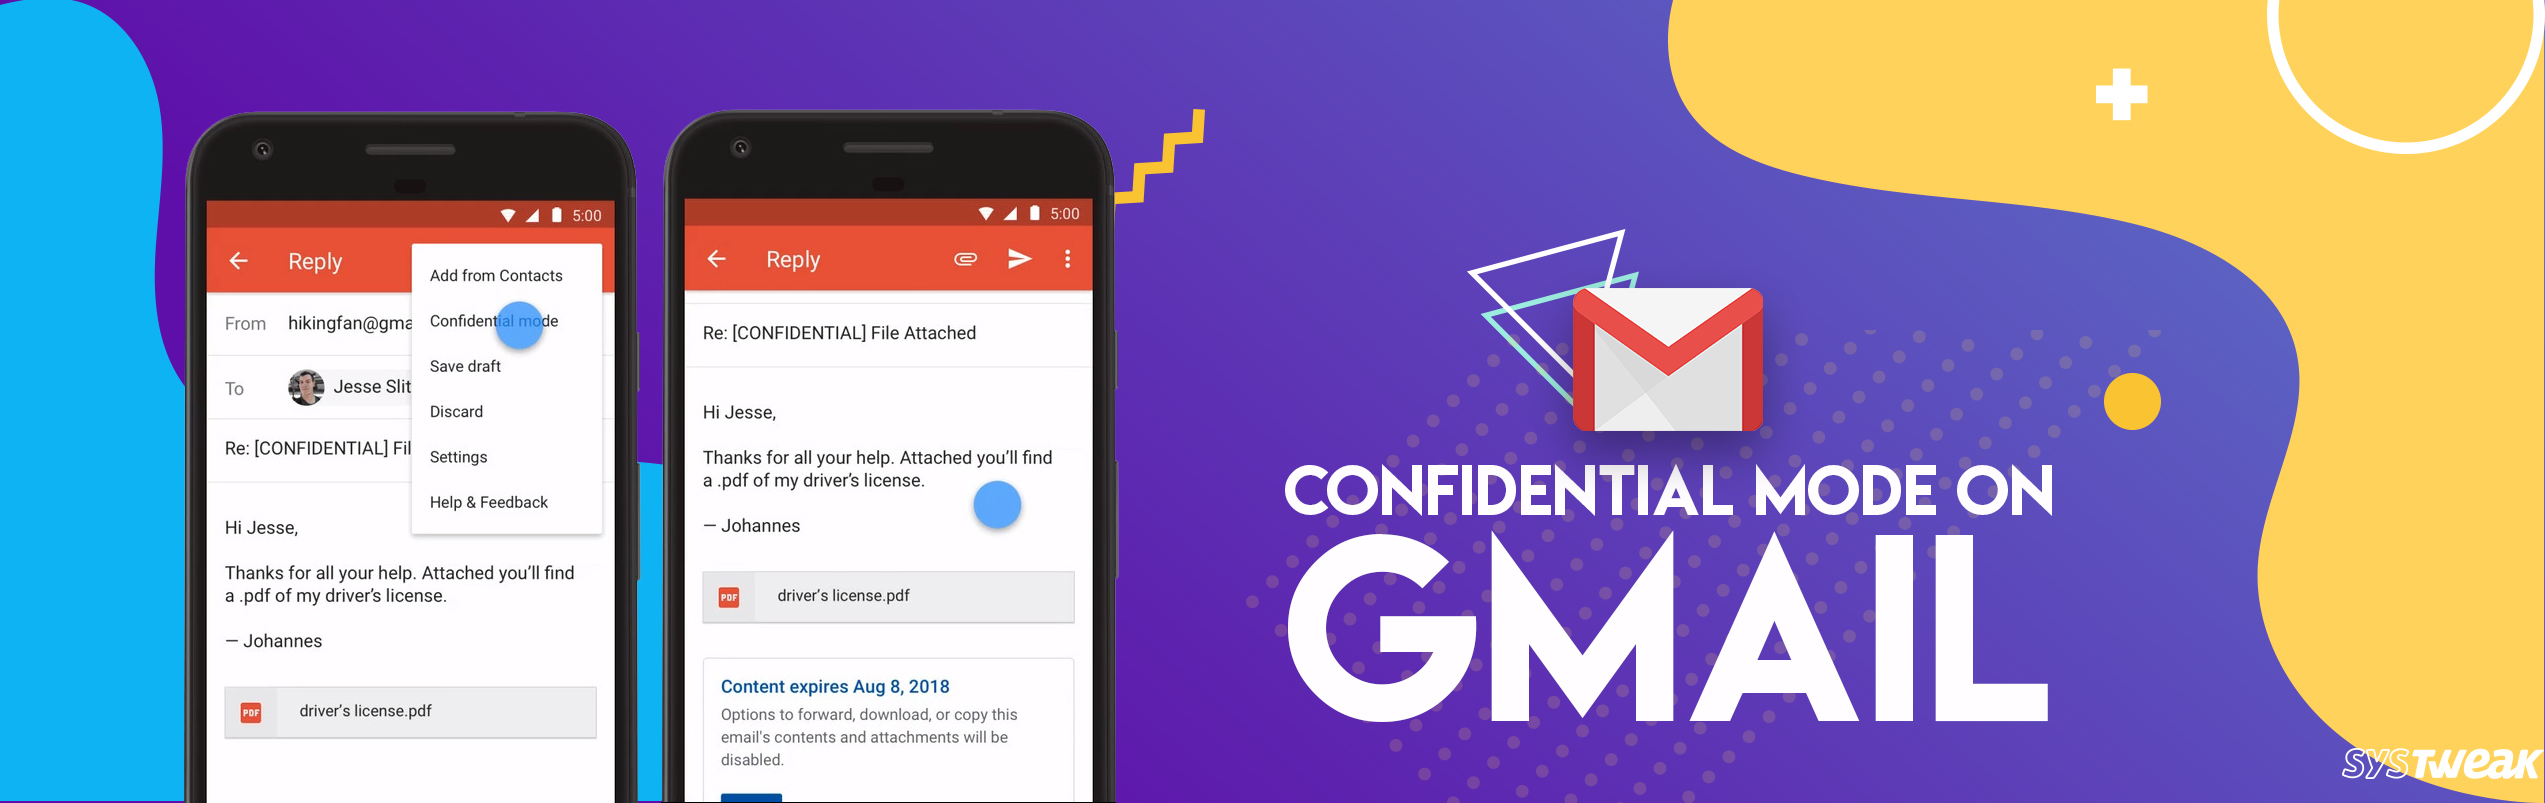 """How To Use Gmail's """"Confidential Mode""""?"""